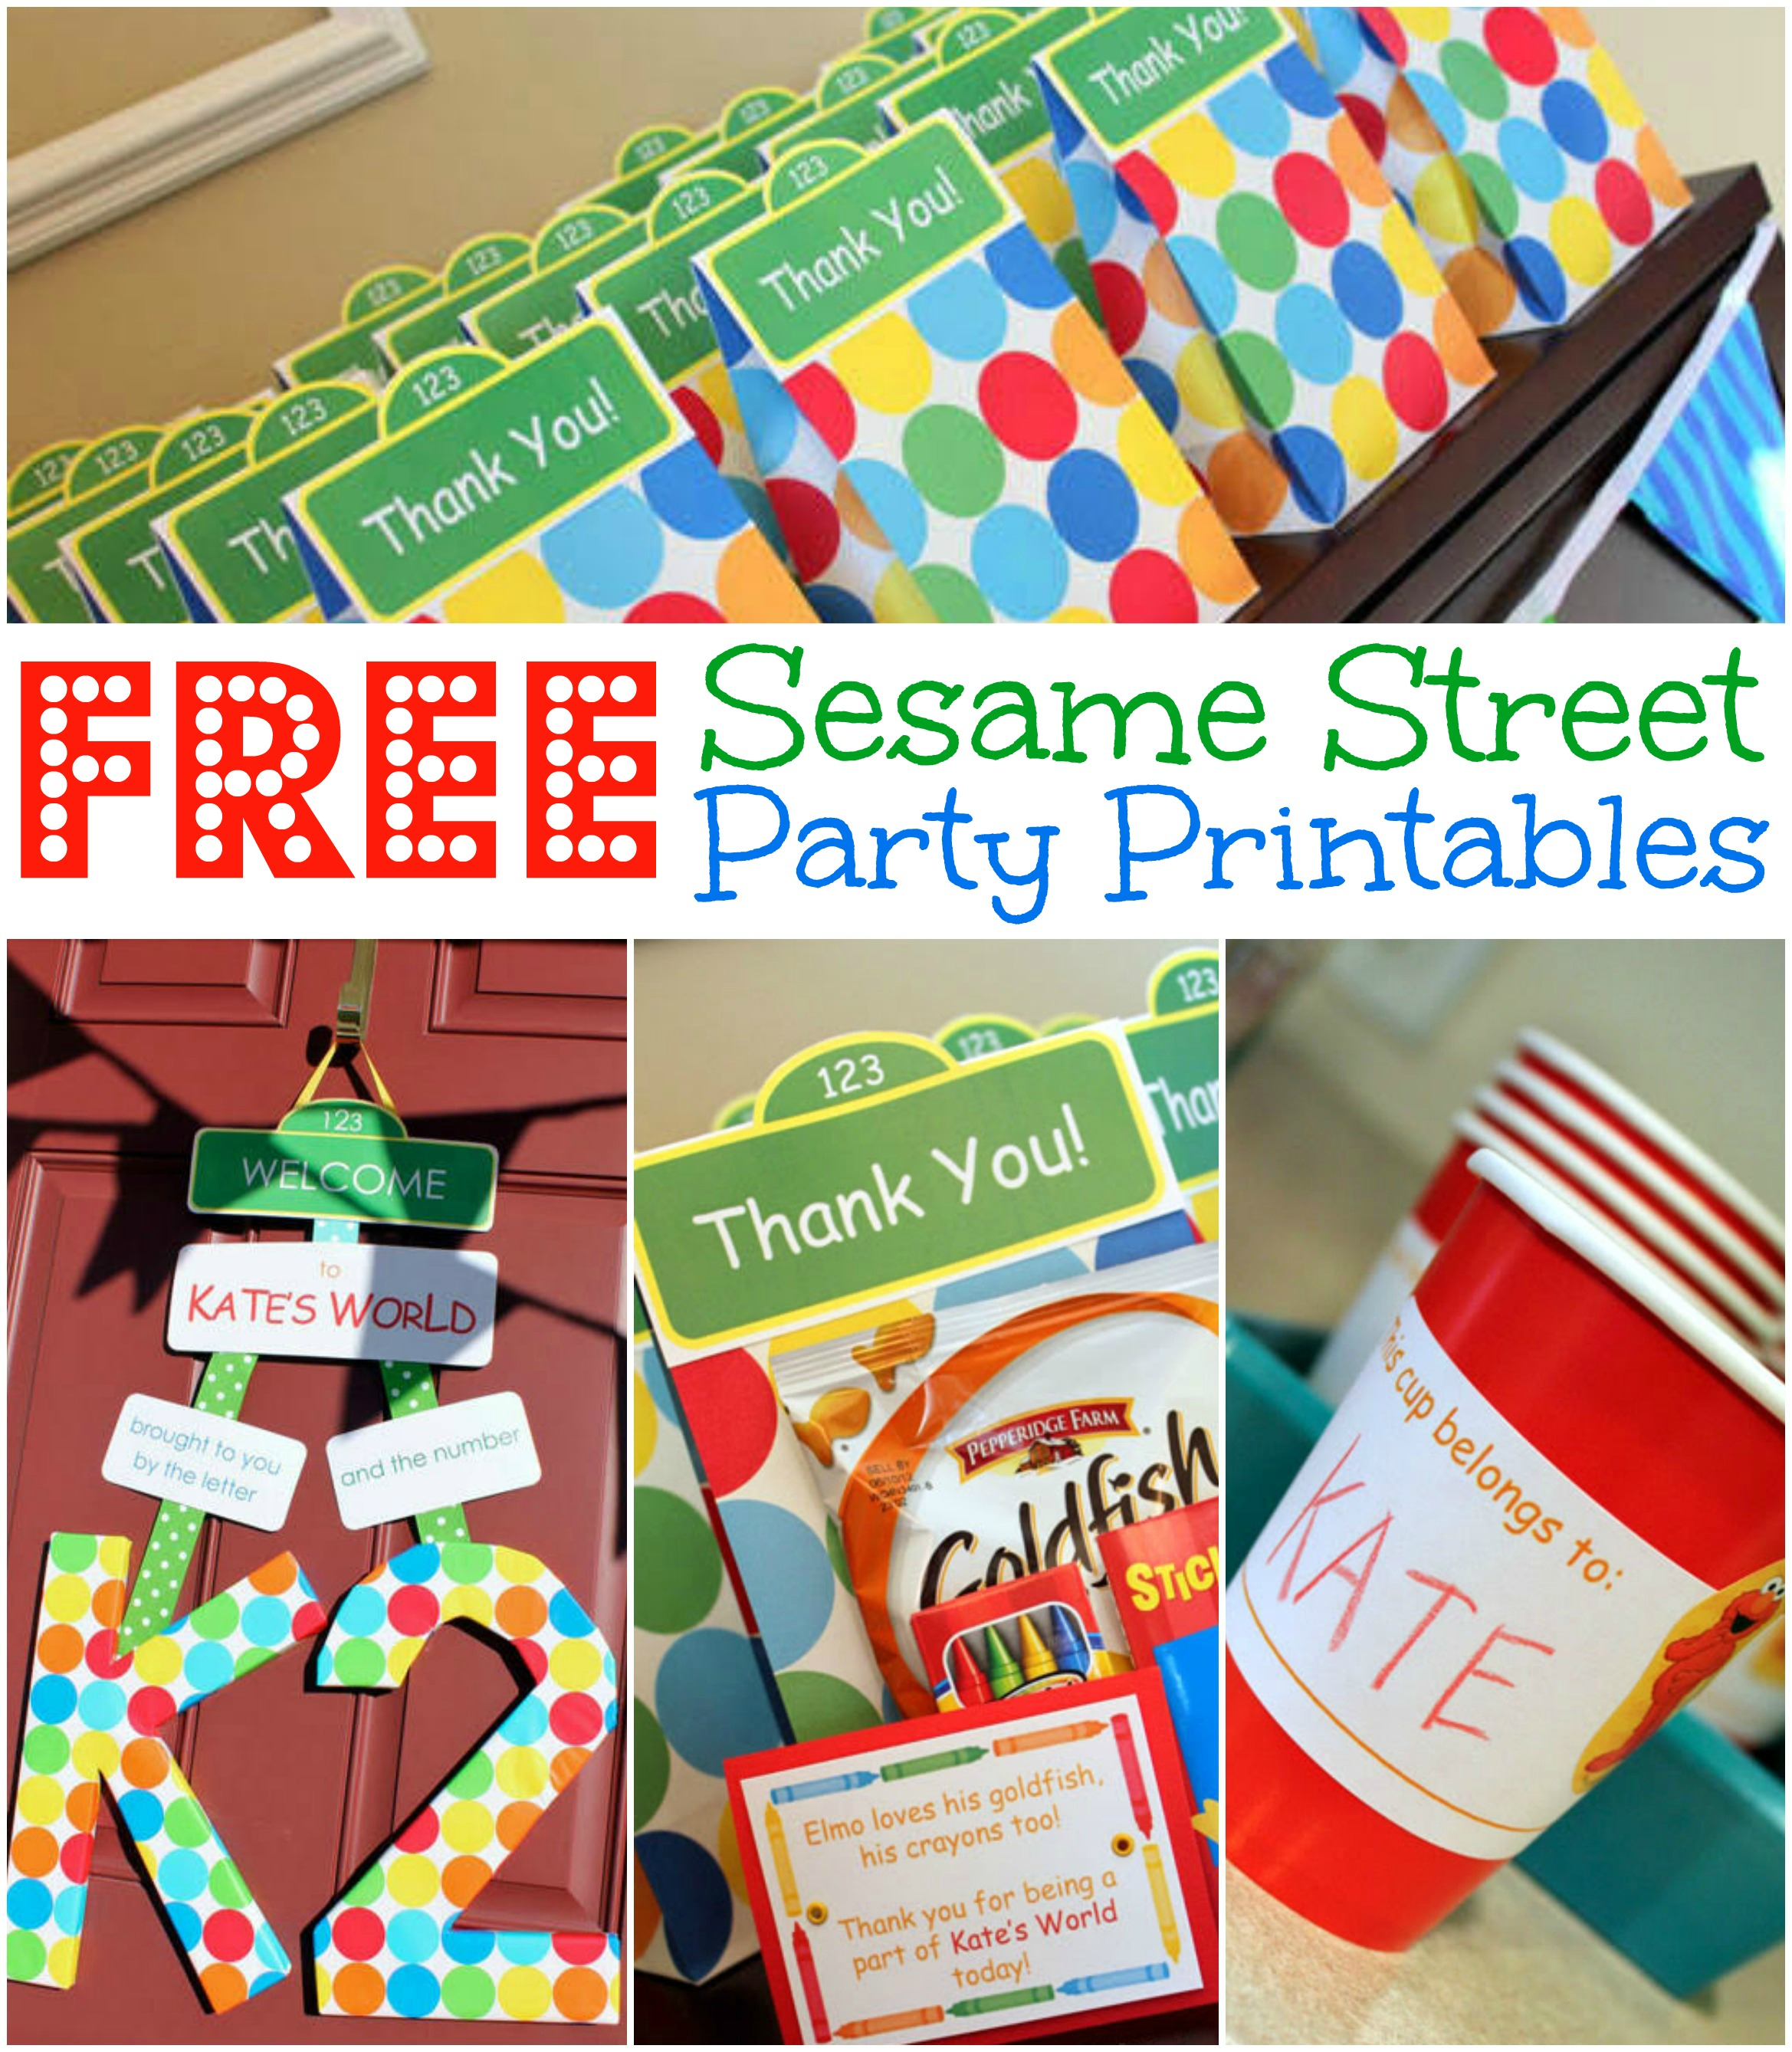 9 Images of Sesame Street Birthday Printables